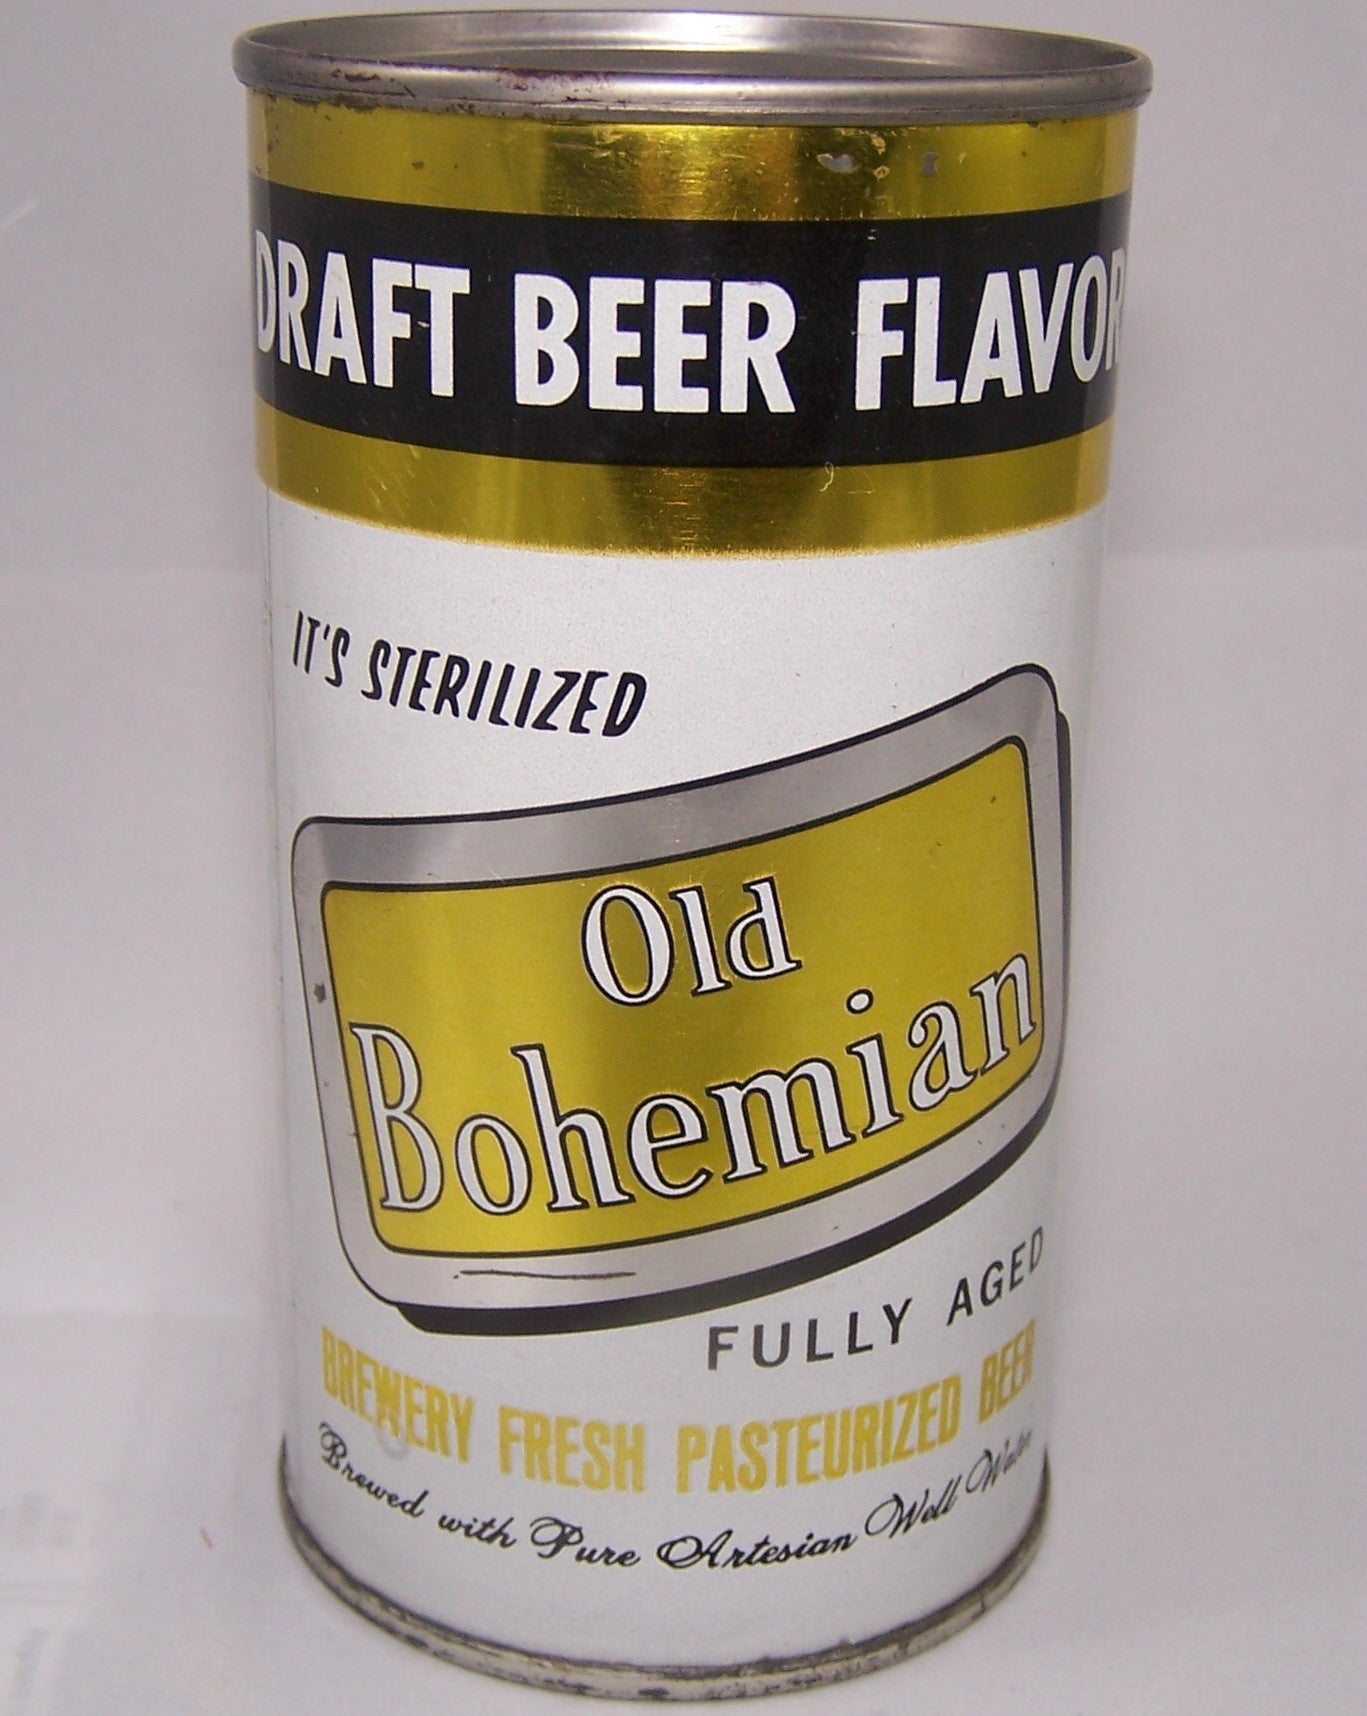 Old Bohemian Draft Beer Flavor, USBC 104-30, Grade 1 to 1/1+ Sold 4/10/15